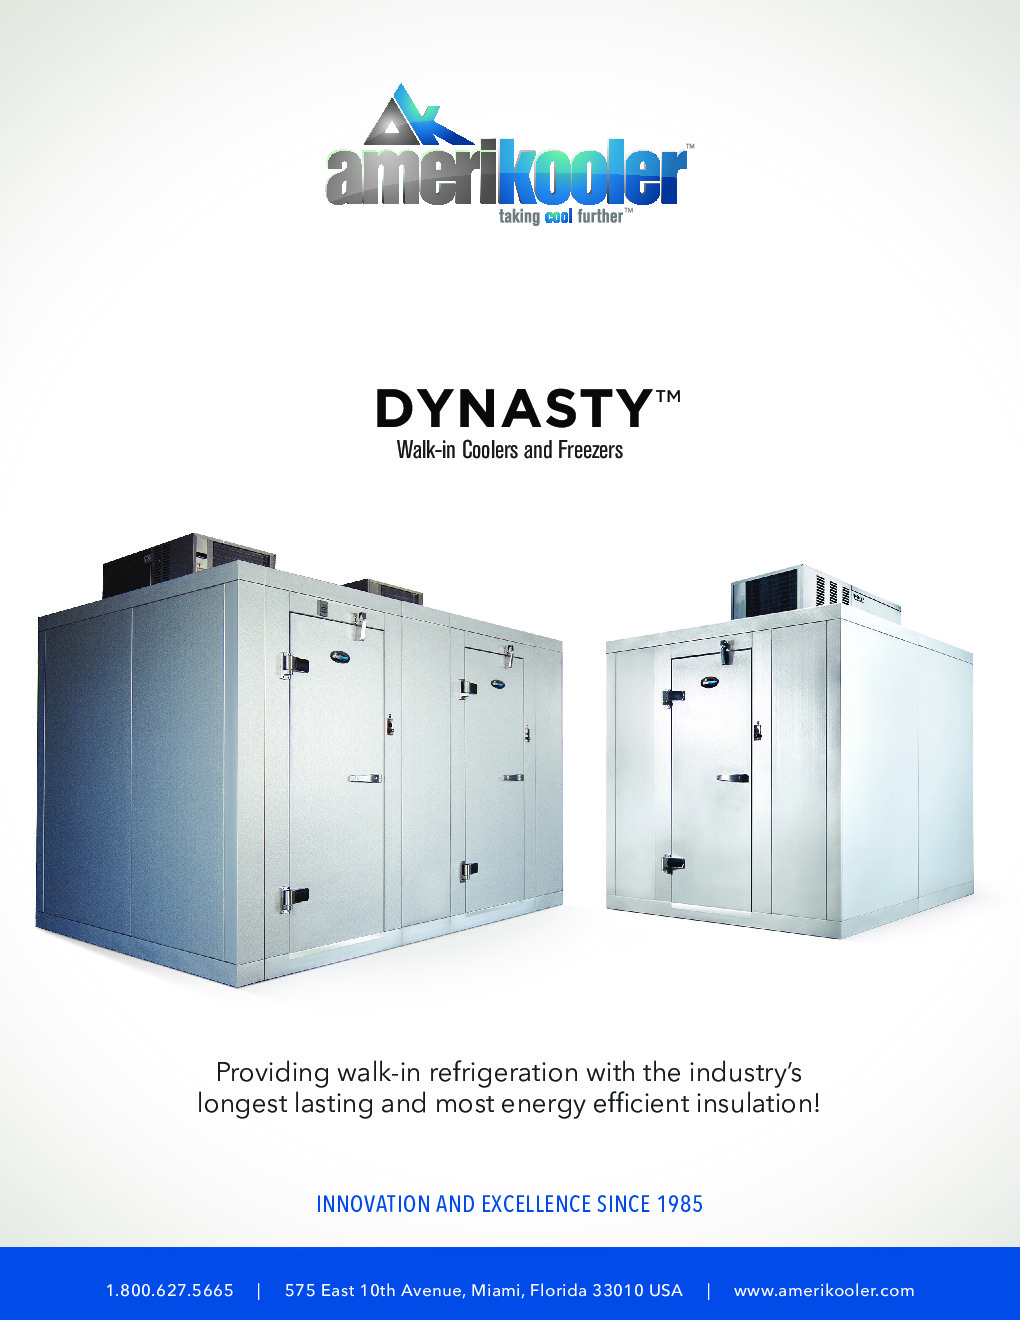 AmeriKooler DW081477N-4/10-RM 8' X 14' Walk-In Cooler, 10' L Cooler without Floor and 4' L Freezer, Remote